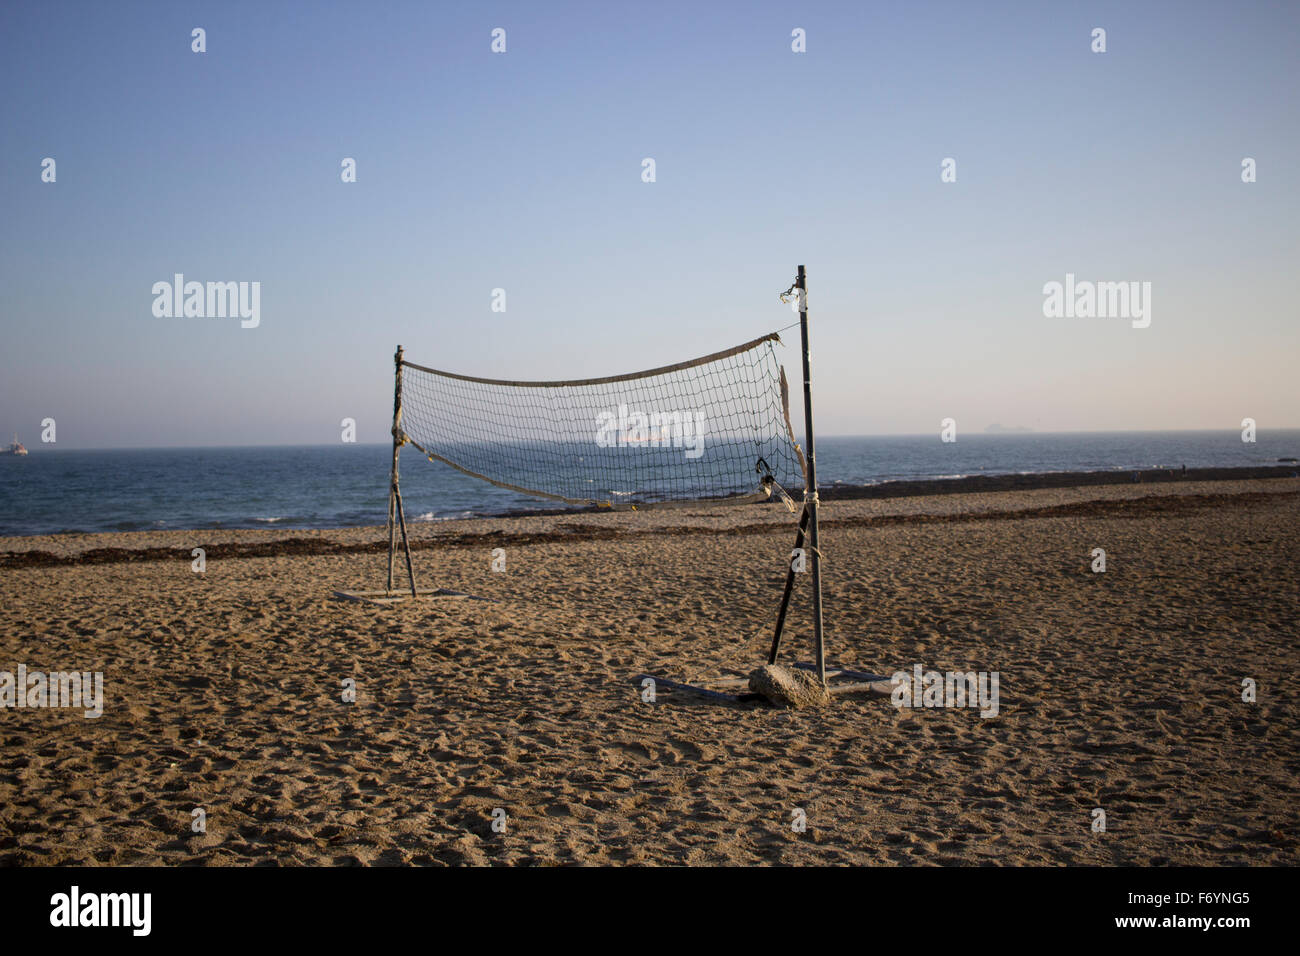 A volleyball net sits unused on an unusually warm sunny day in November - Gyllyngvase beach (also known as Gylly - Stock Image